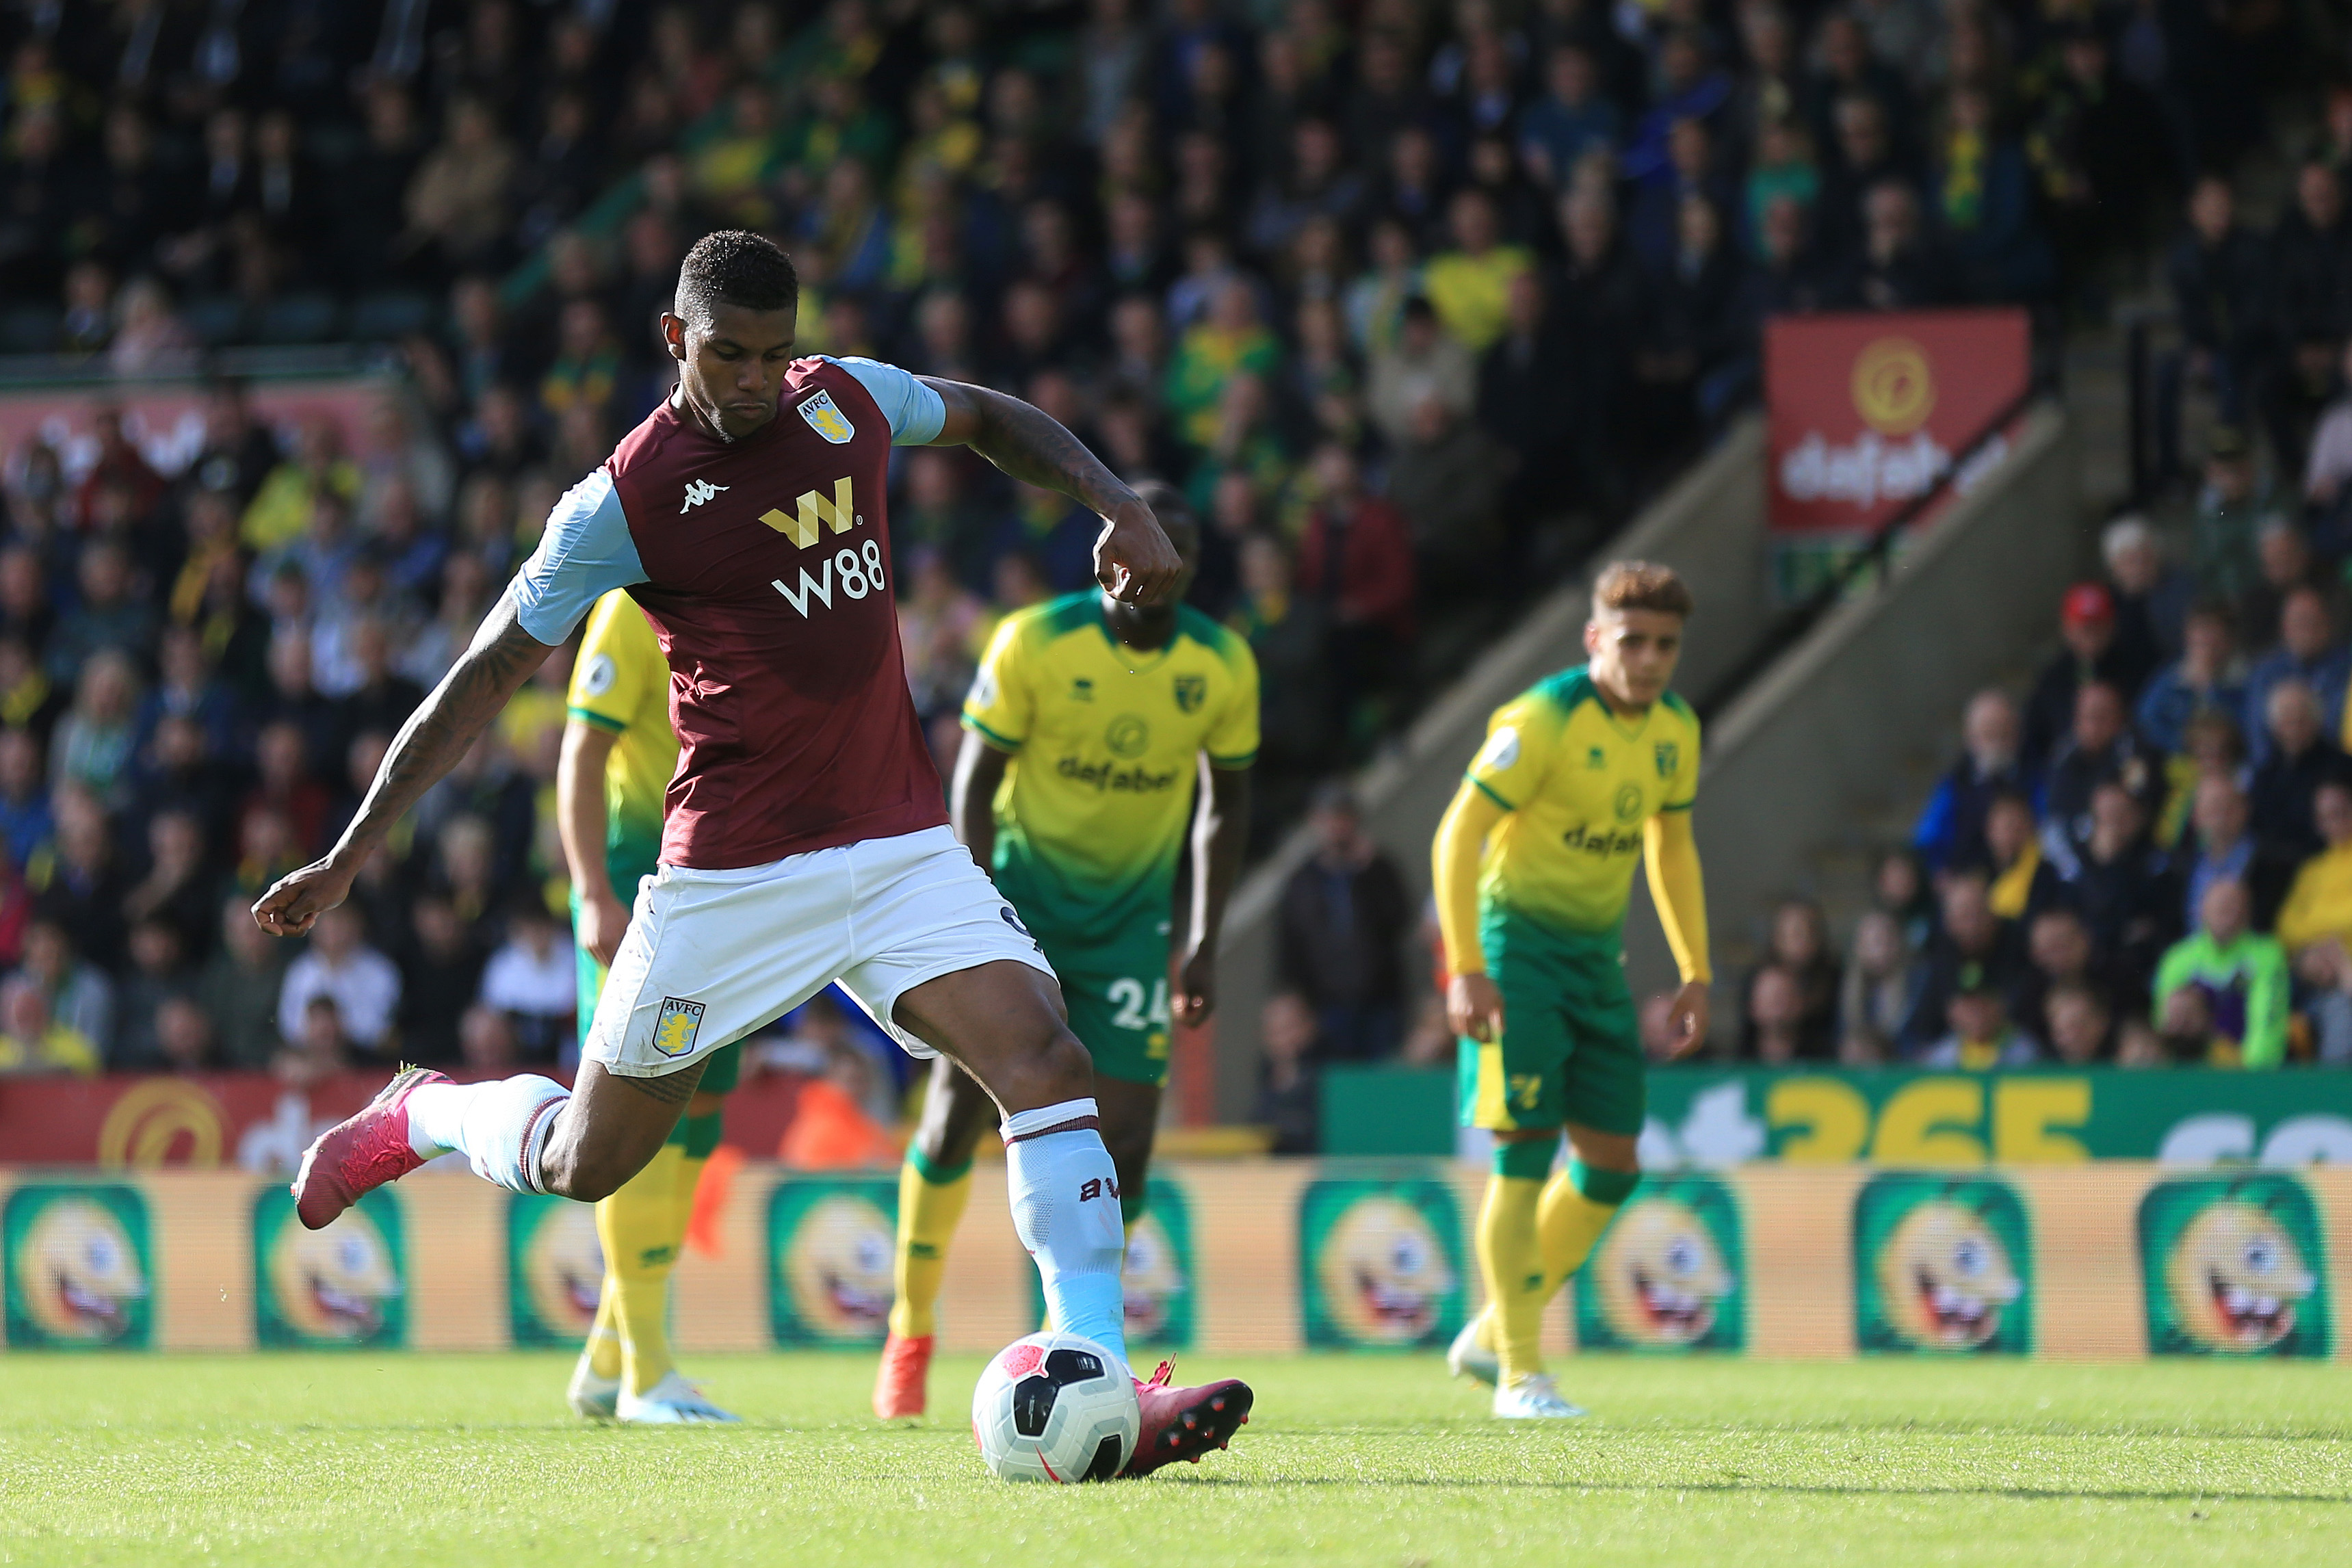 Norwich City v Aston Villa - Premier League